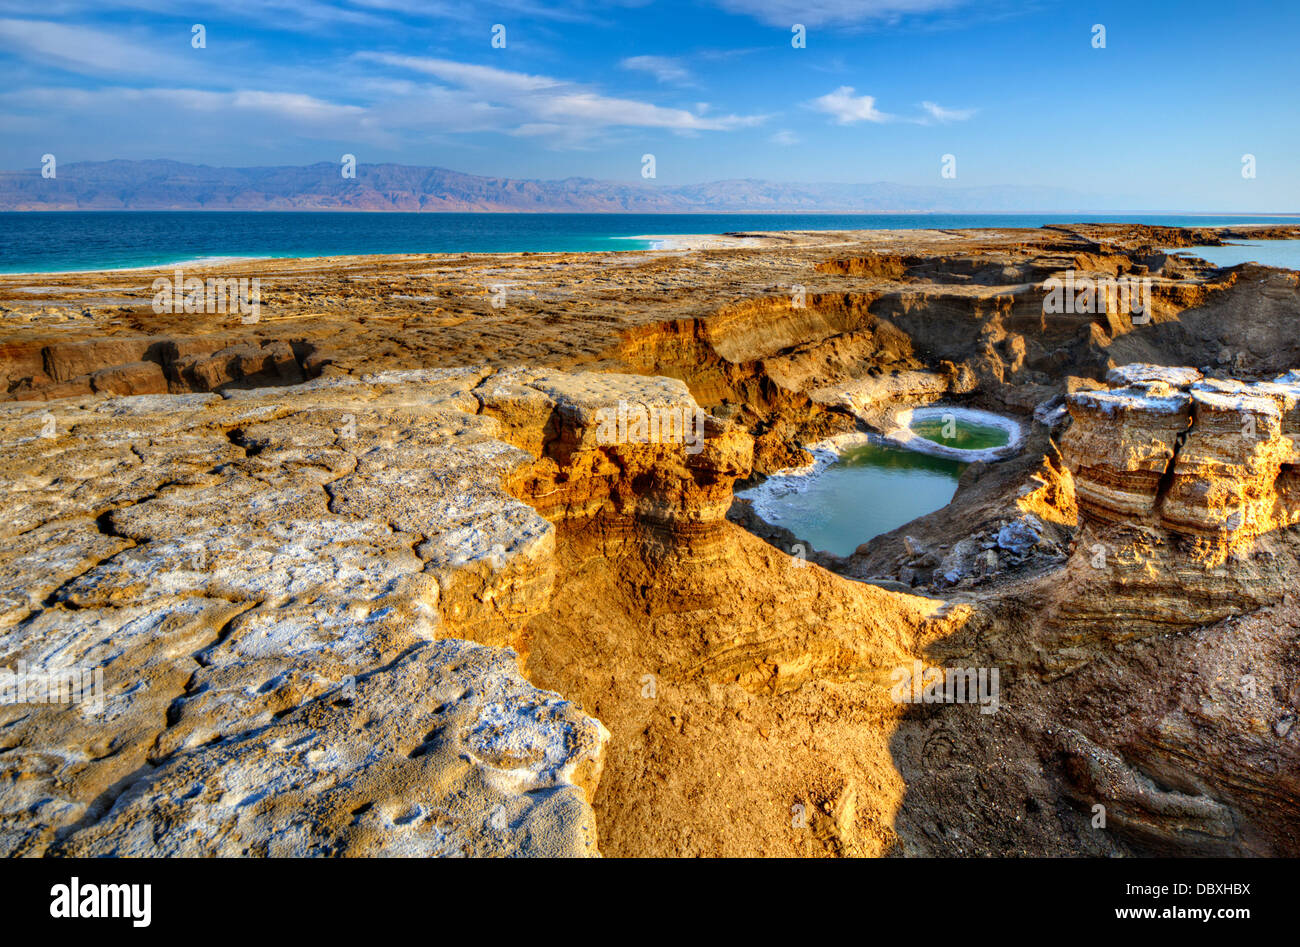 Sinkholes near the Dead Sea in Ein Gedi, Israel. Stock Photo